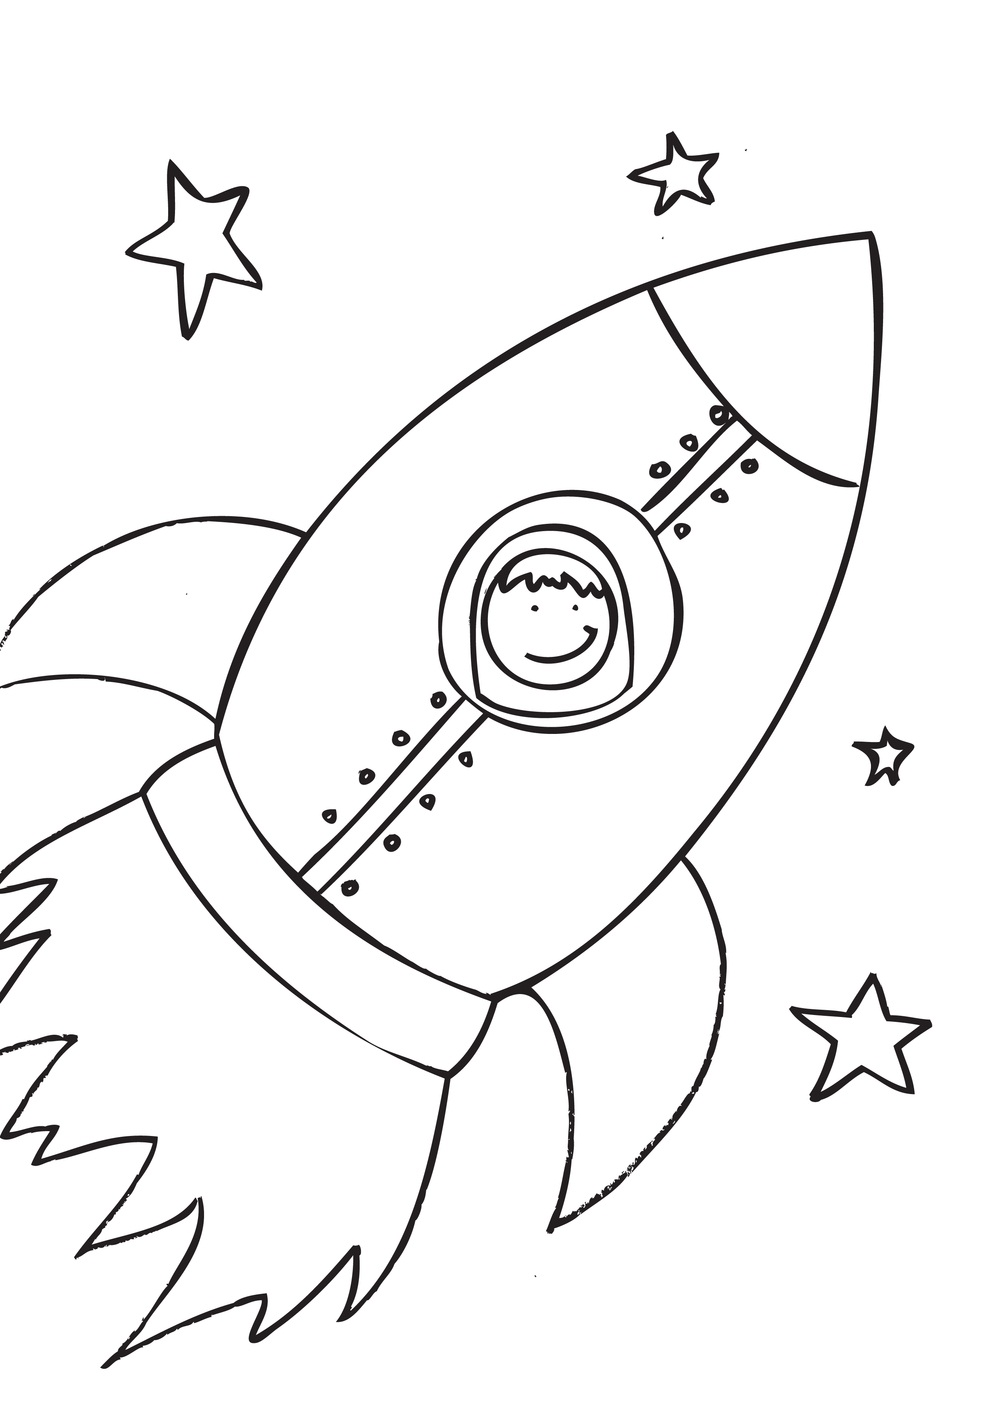 Comprehensive image inside rocket ship printable